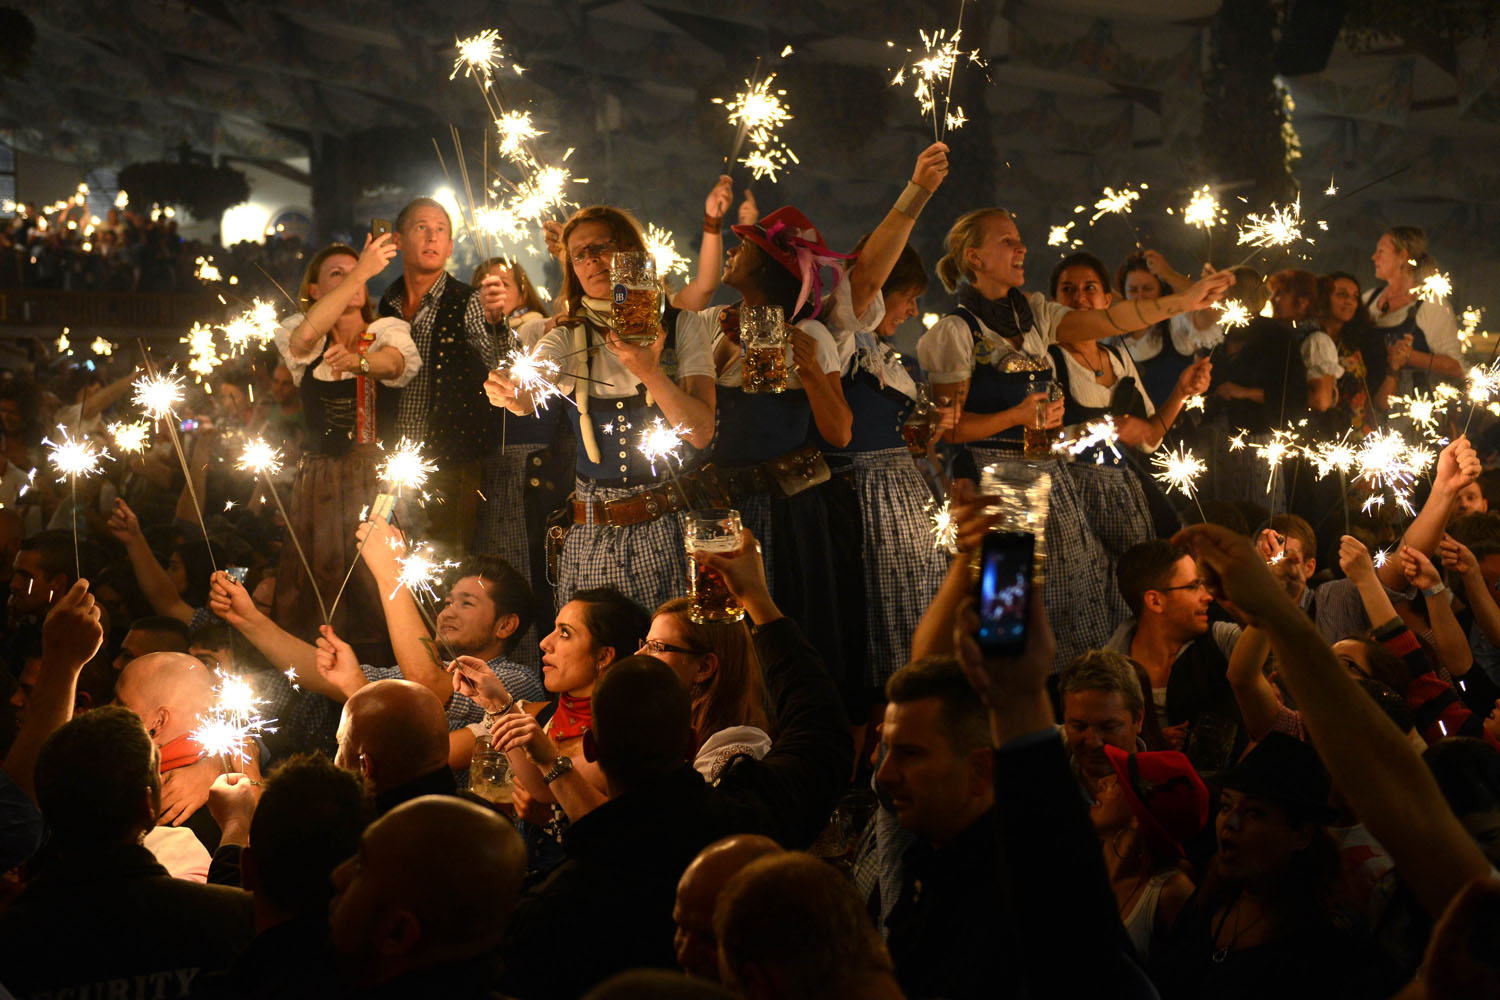 Oct. 6, 2013. Visitors and waitresses celebrate the end of this year's Bavarian Oktoberfest beer festival at the Theresienwiese in Munich.